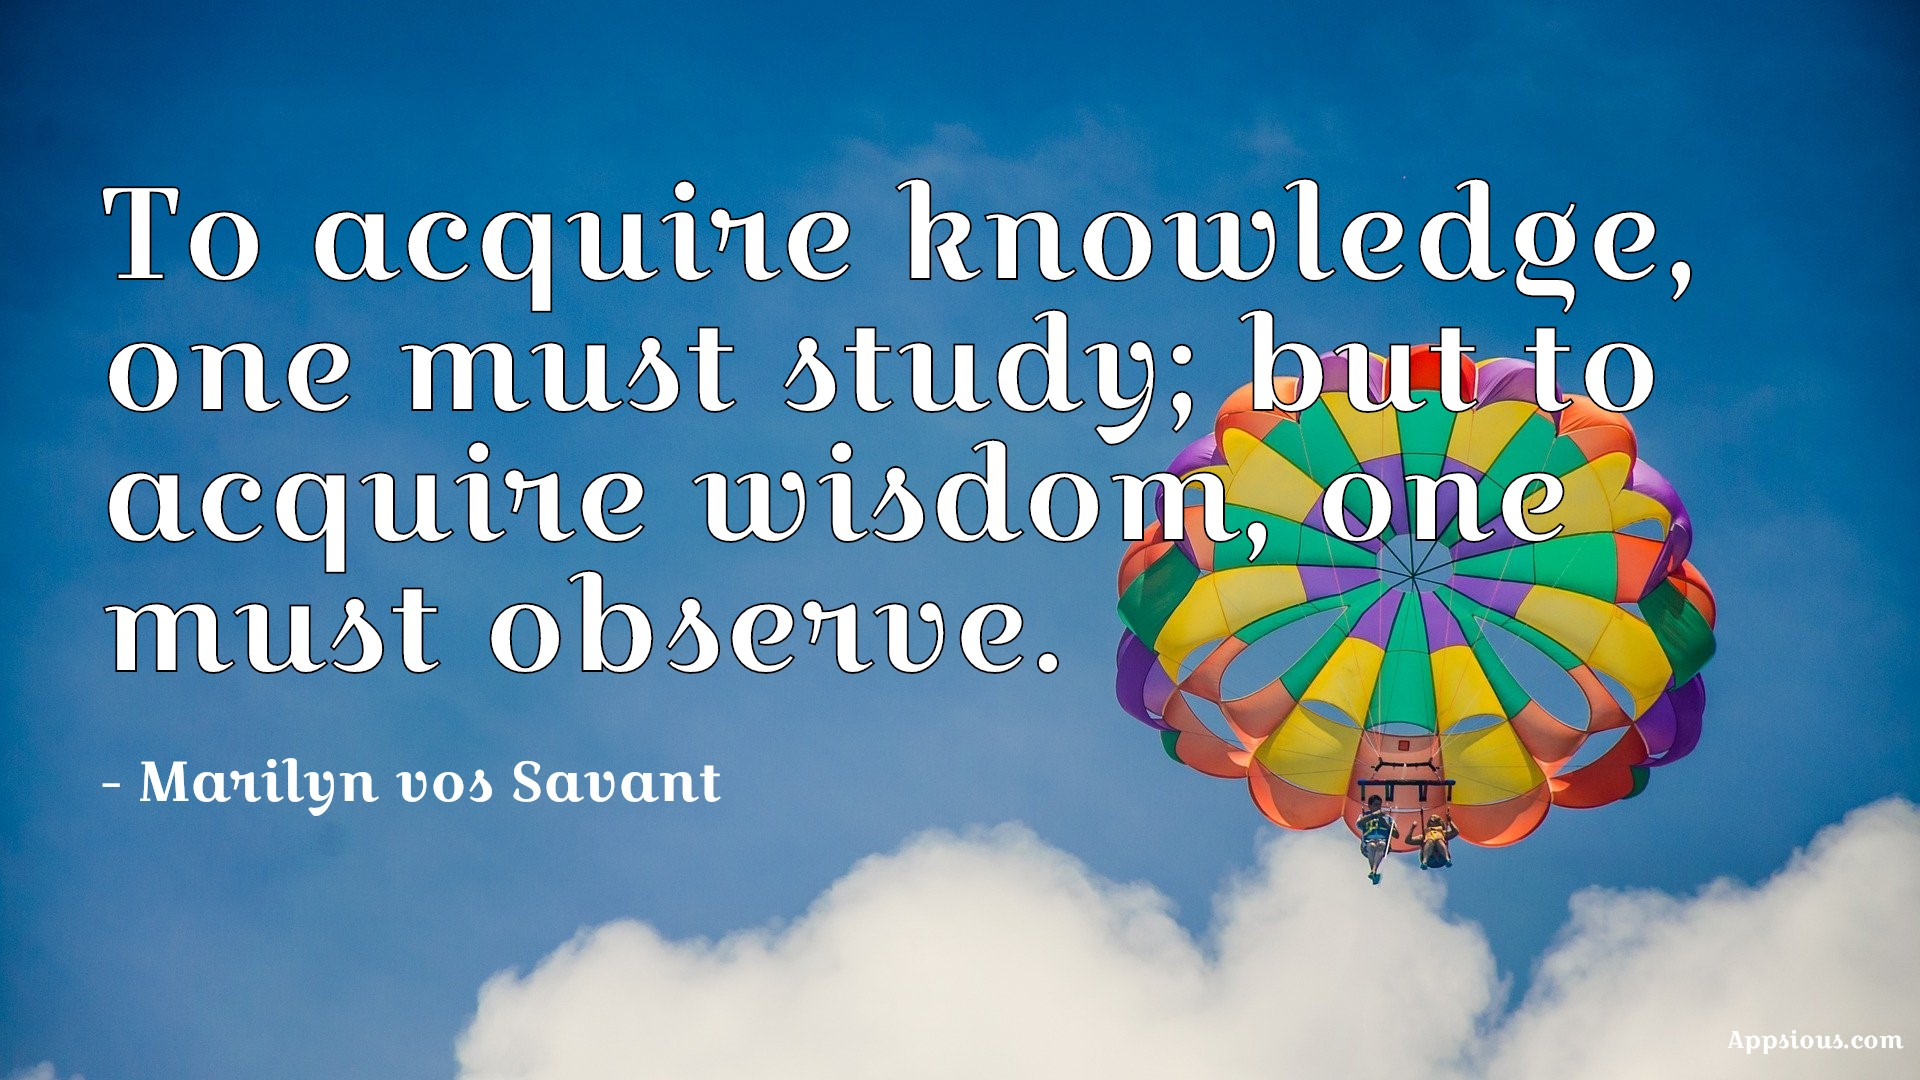 To acquire knowledge, one must study; but to acquire wisdom, one must observe.